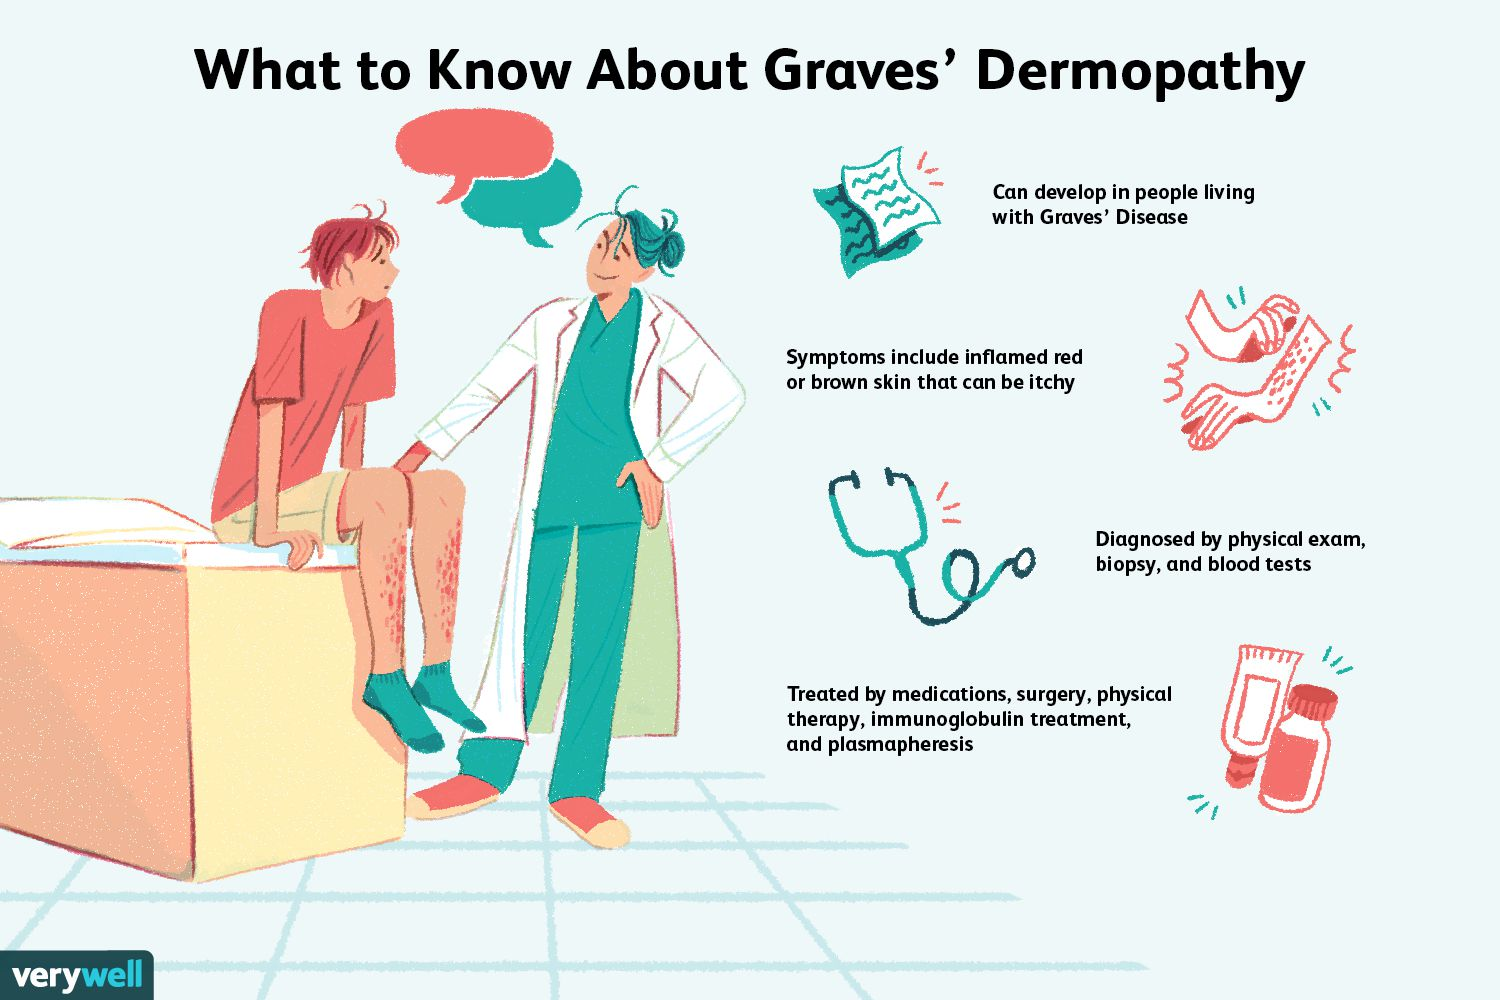 What to Know About Graves' Dermopathy